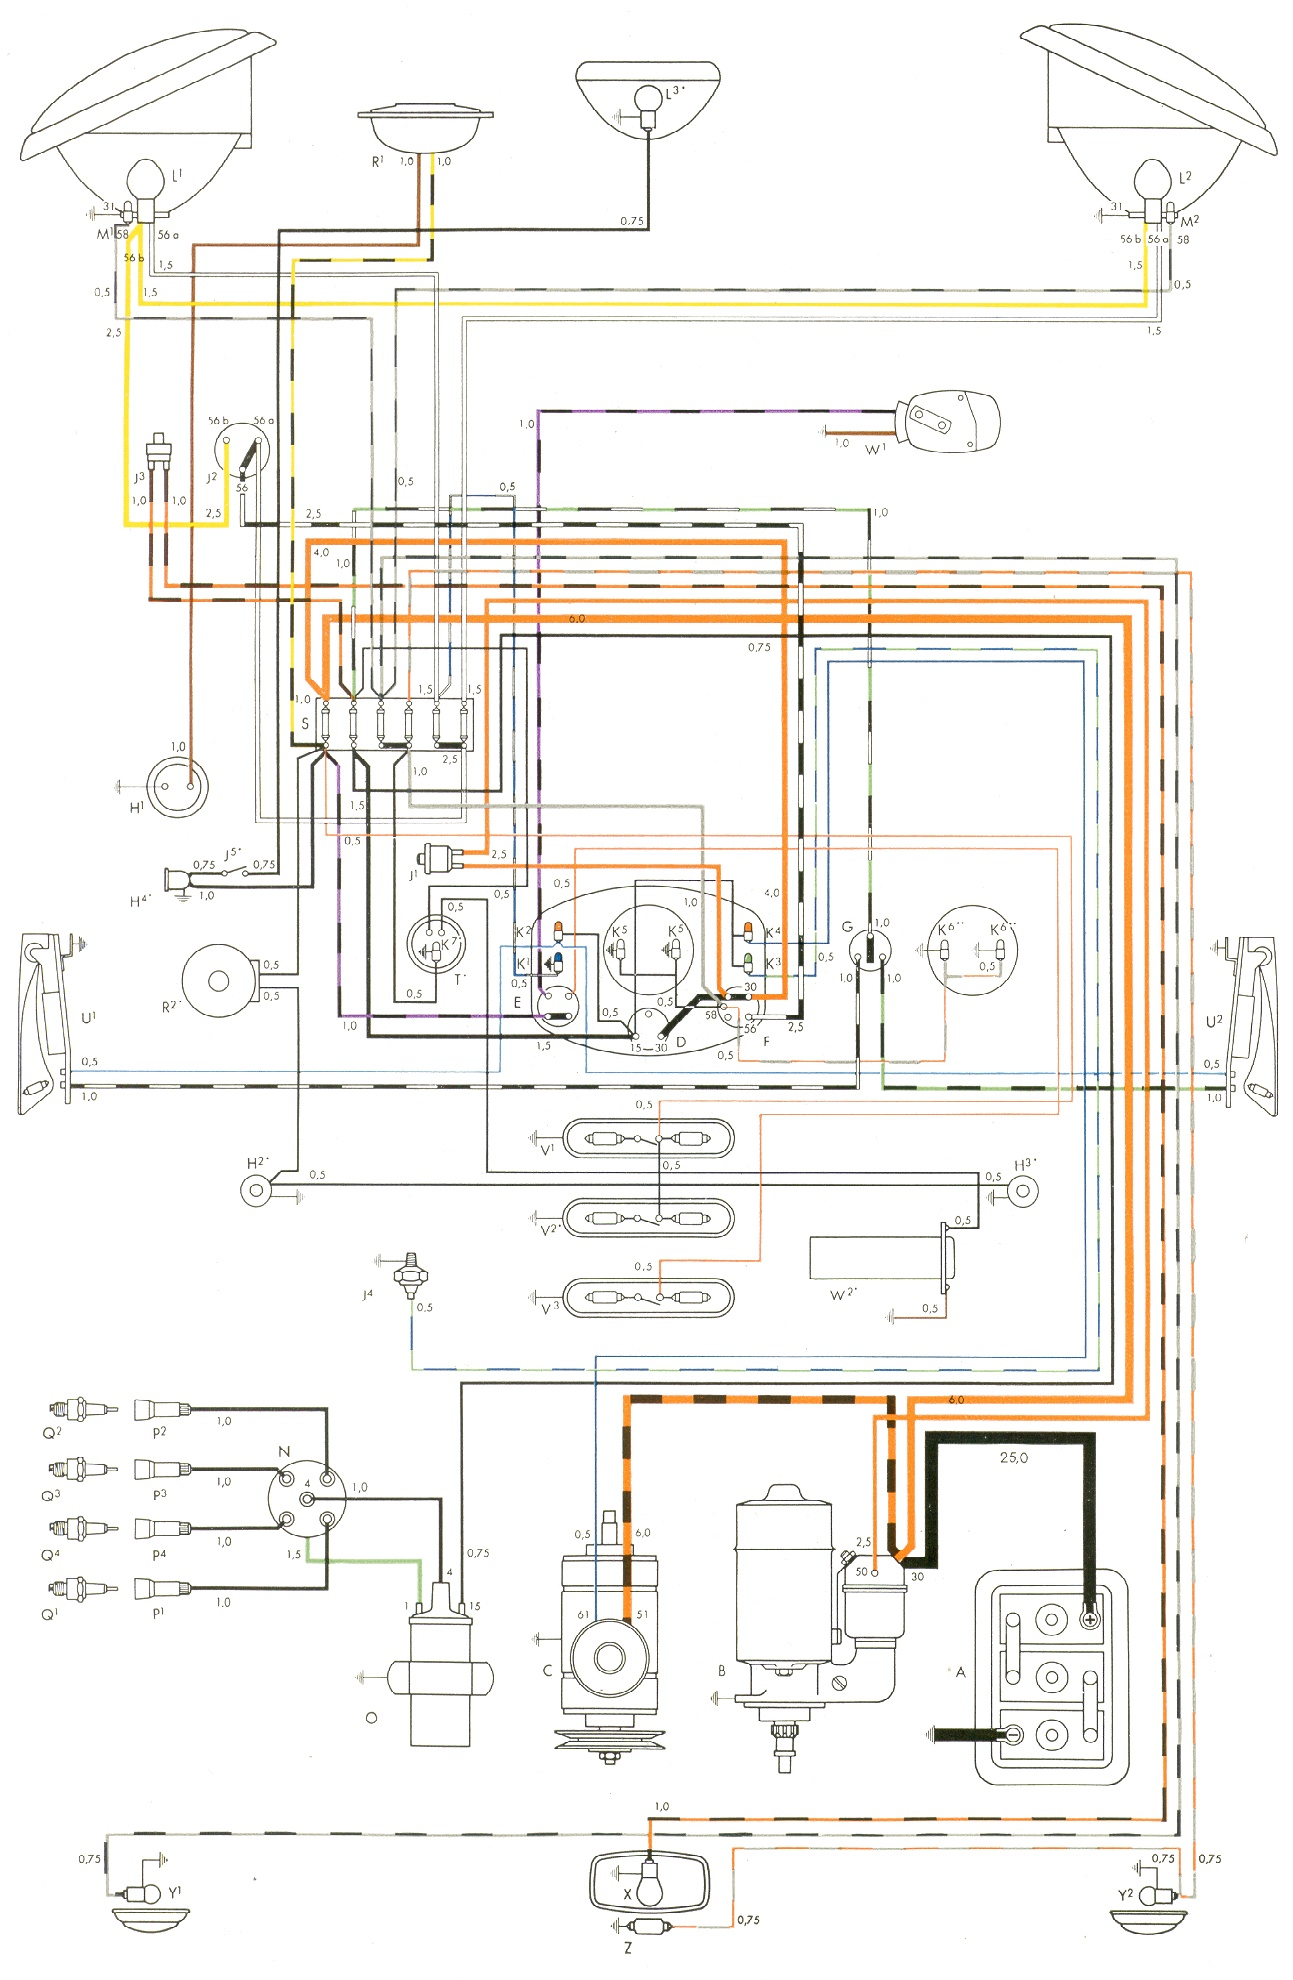 bus 54 vintagebus com vw bus (and other) wiring diagrams new beetle wiring diagram at bayanpartner.co